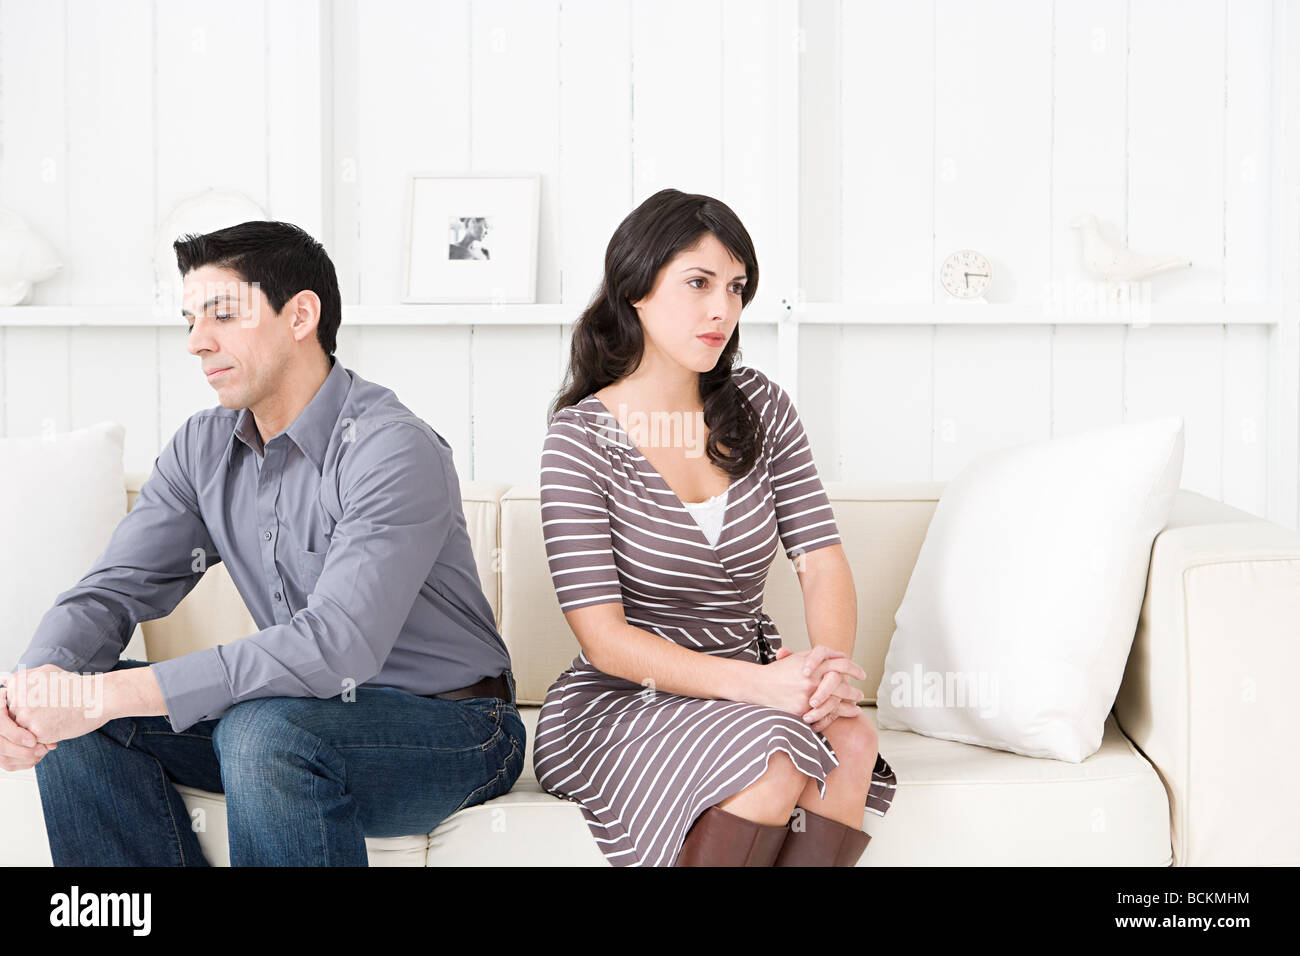 Hostile couple in a living room Stock Photo